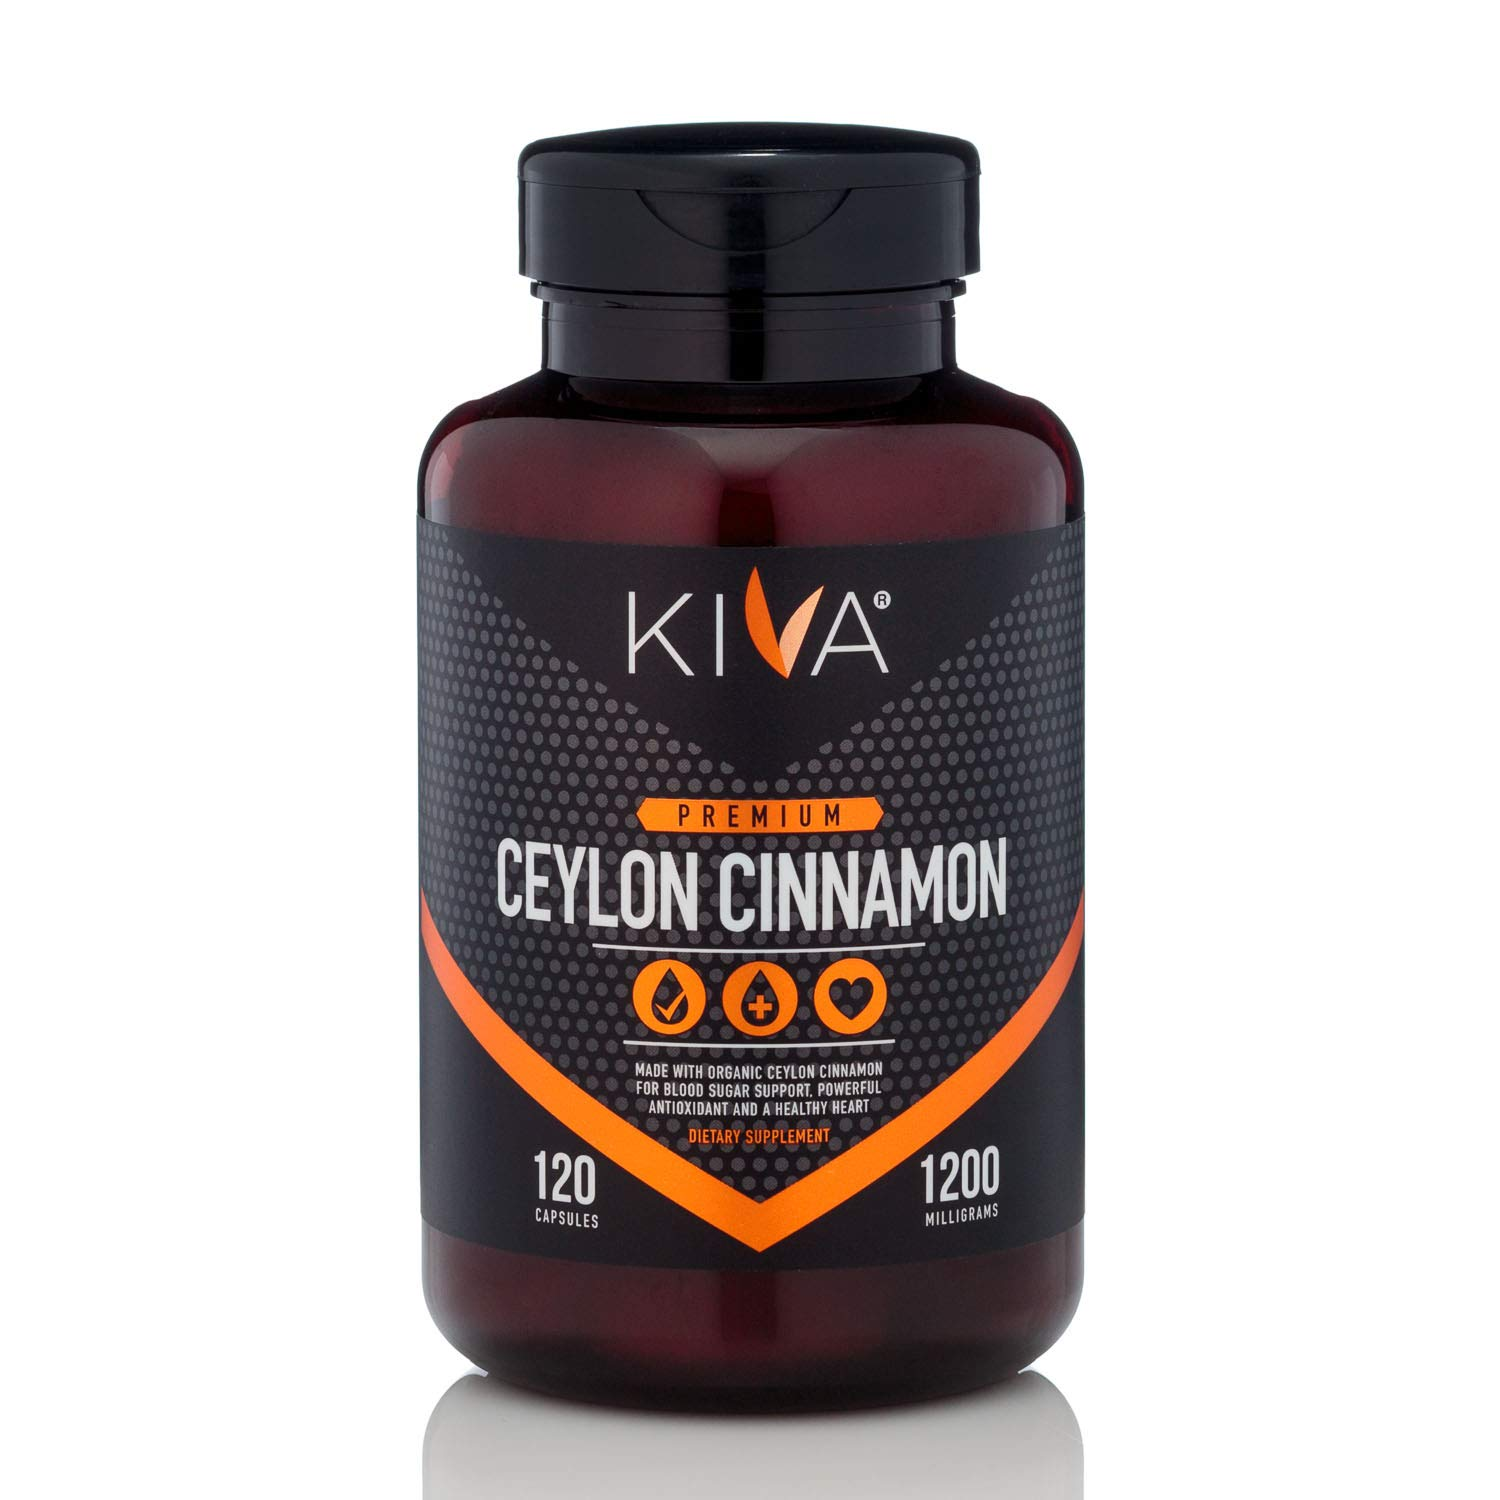 Kiva Ceylon Cinnamon Powder Capsules (120 Veggie Capsules), Made from Freshly Grounded Organic, Non-GMO Cinnamon (Anti-inflammatory, Blood Sugar, Antioxidant)